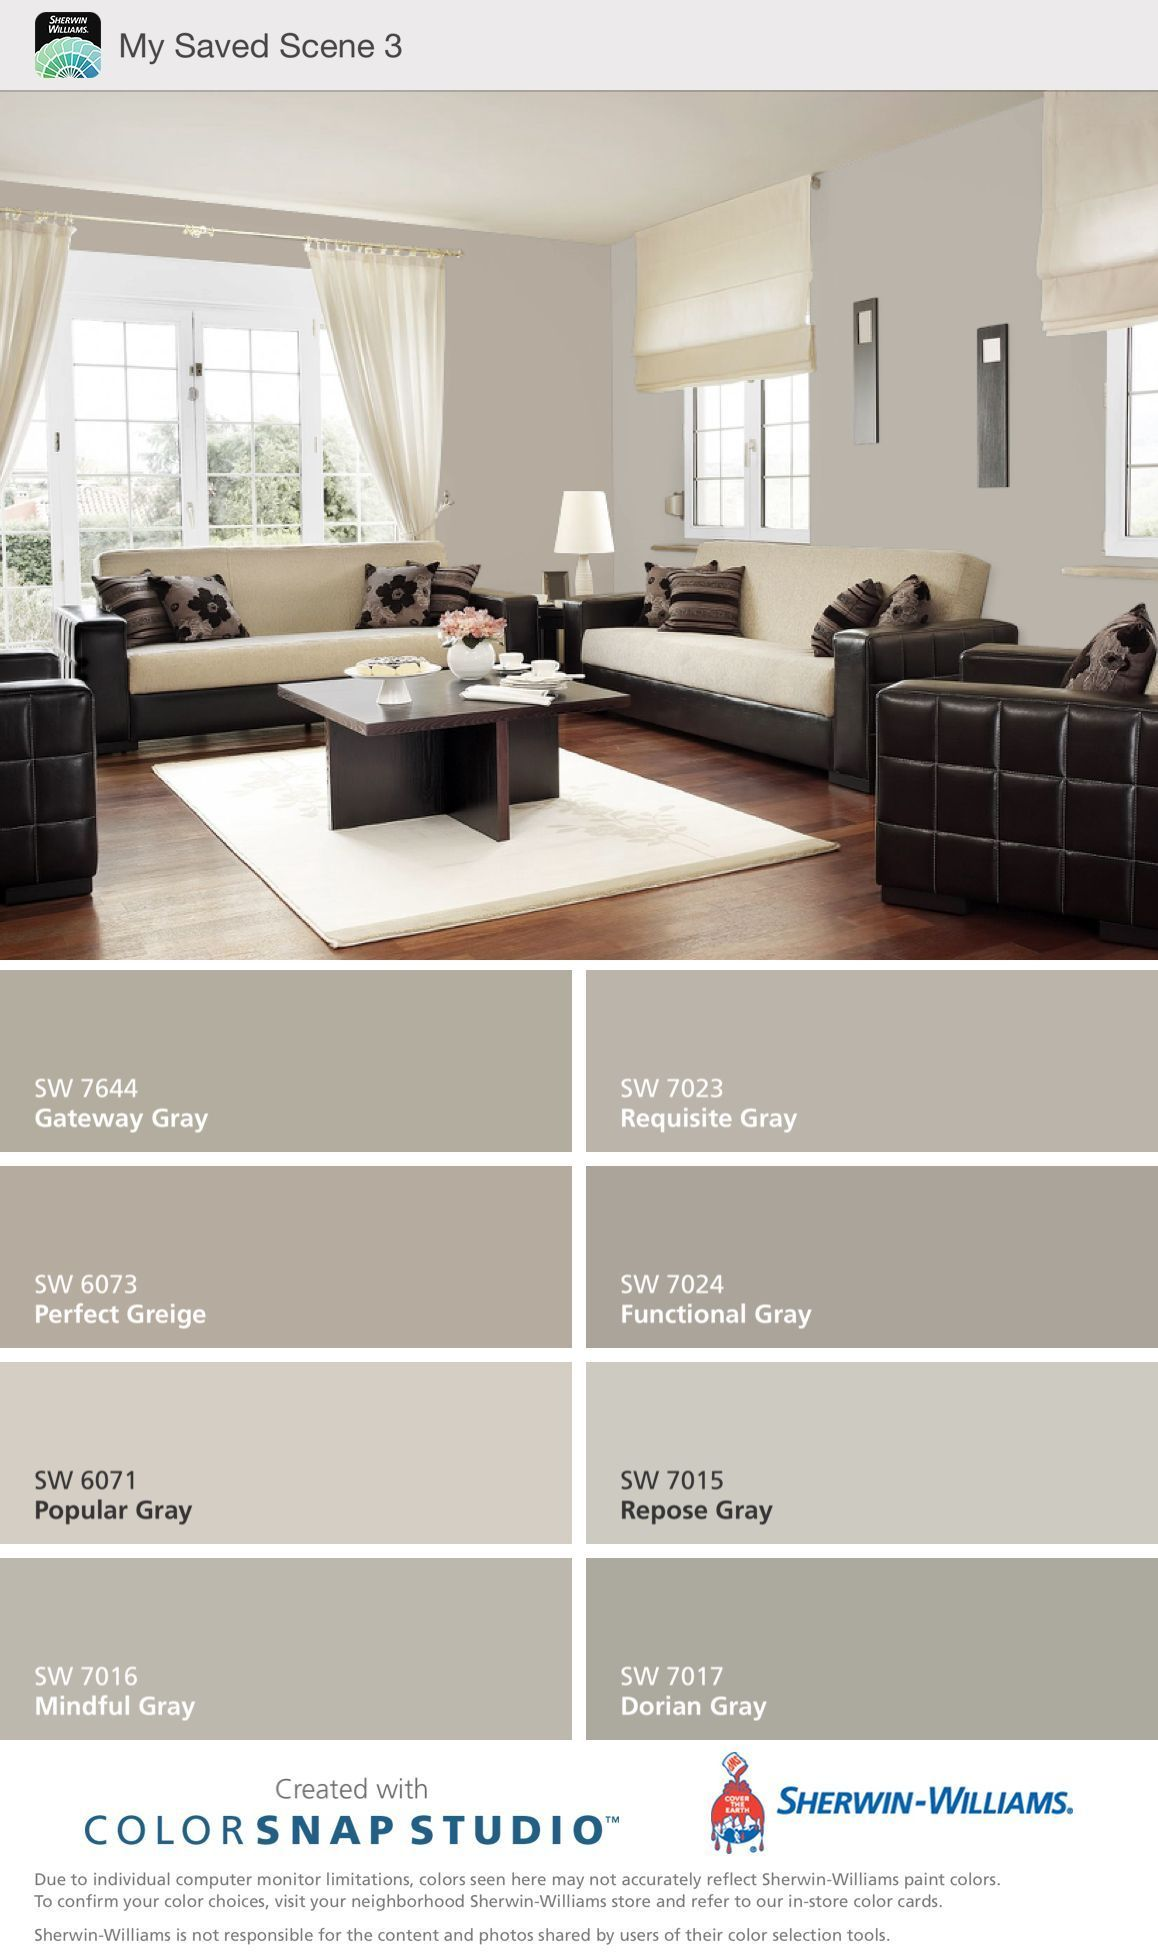 19 Delicate Interior Painting Ikea Hacks Ideas Paint Colors For